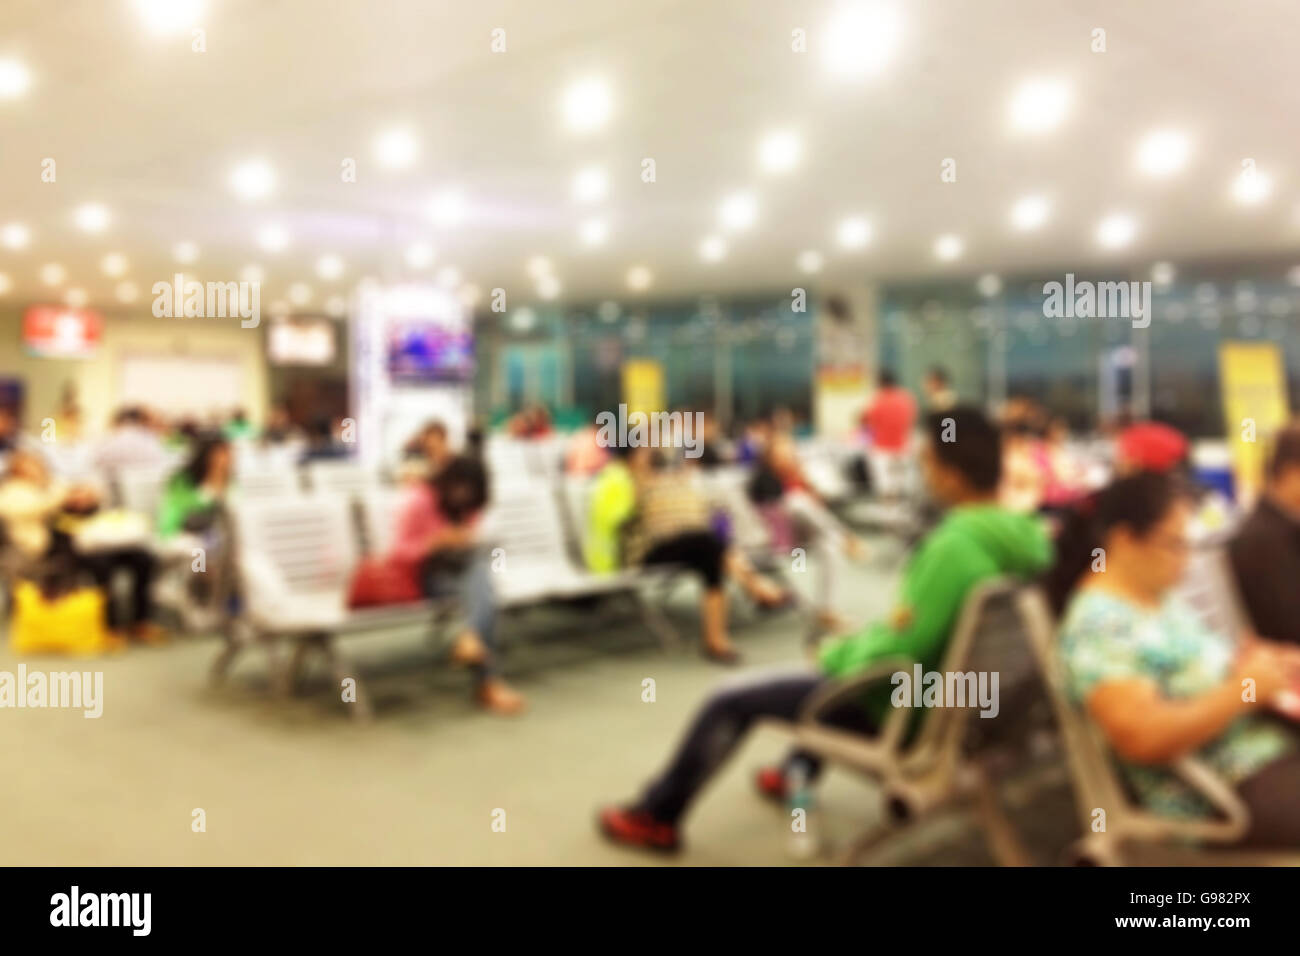 Blurred background of an airport terminal gate - Stock Image